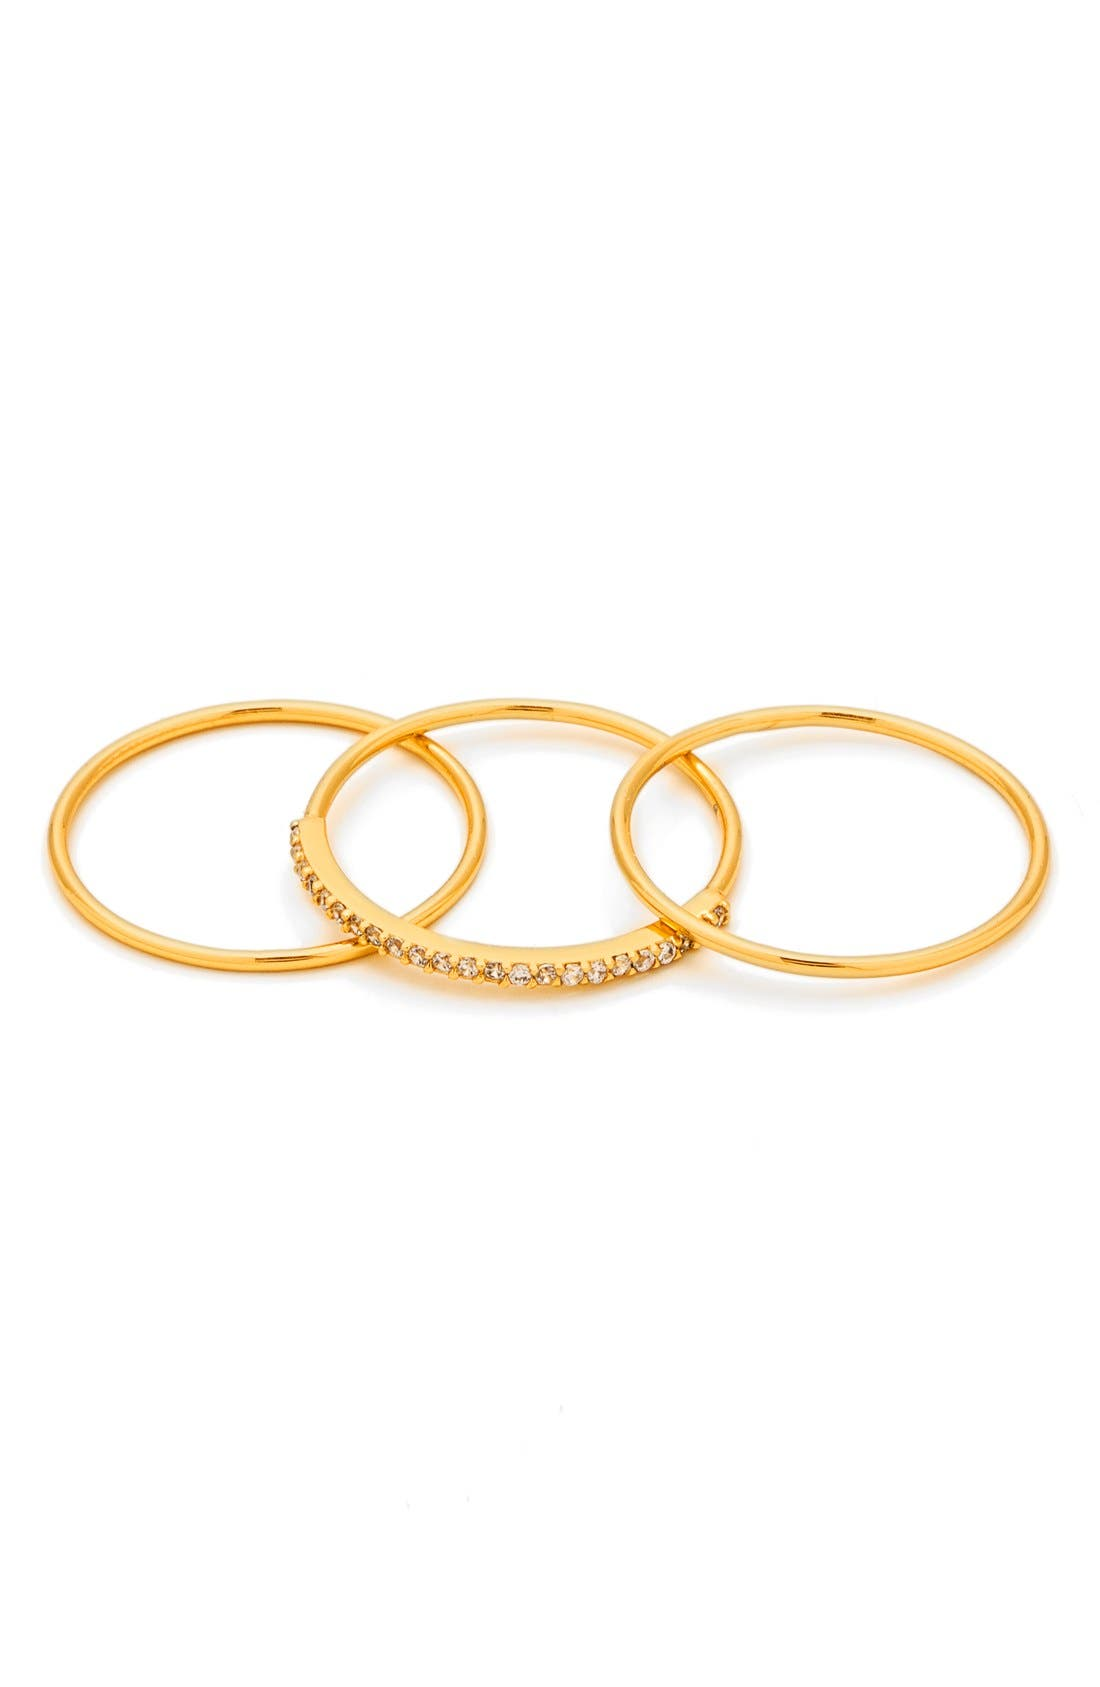 Shimmer Stackable Set of 3 Band Rings,                         Main,                         color,